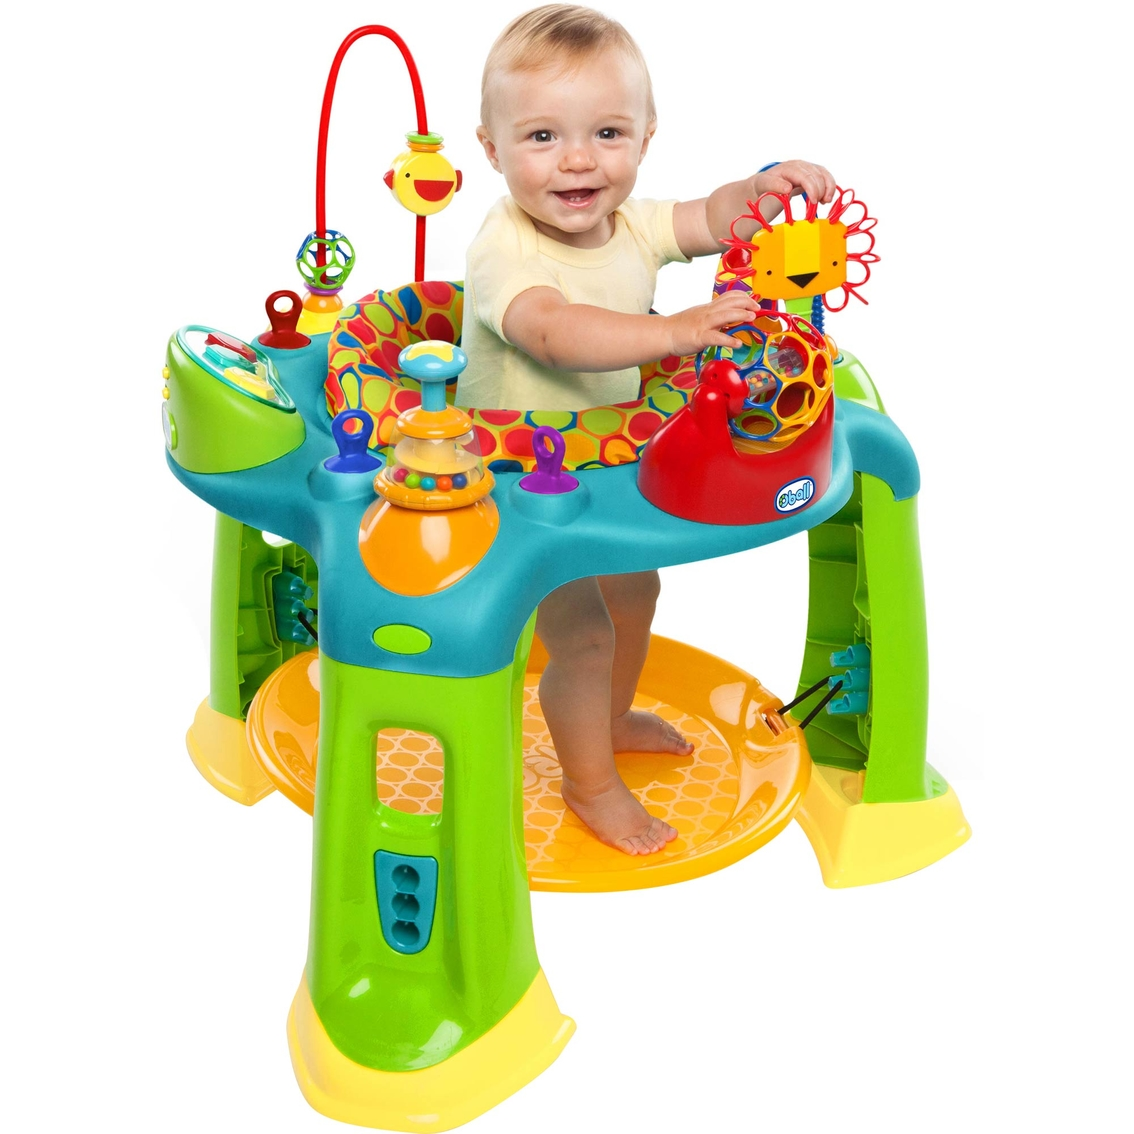 Baby Activity Center Kids Ii Oball Bounce O Bunch Activity Center Activity Centers